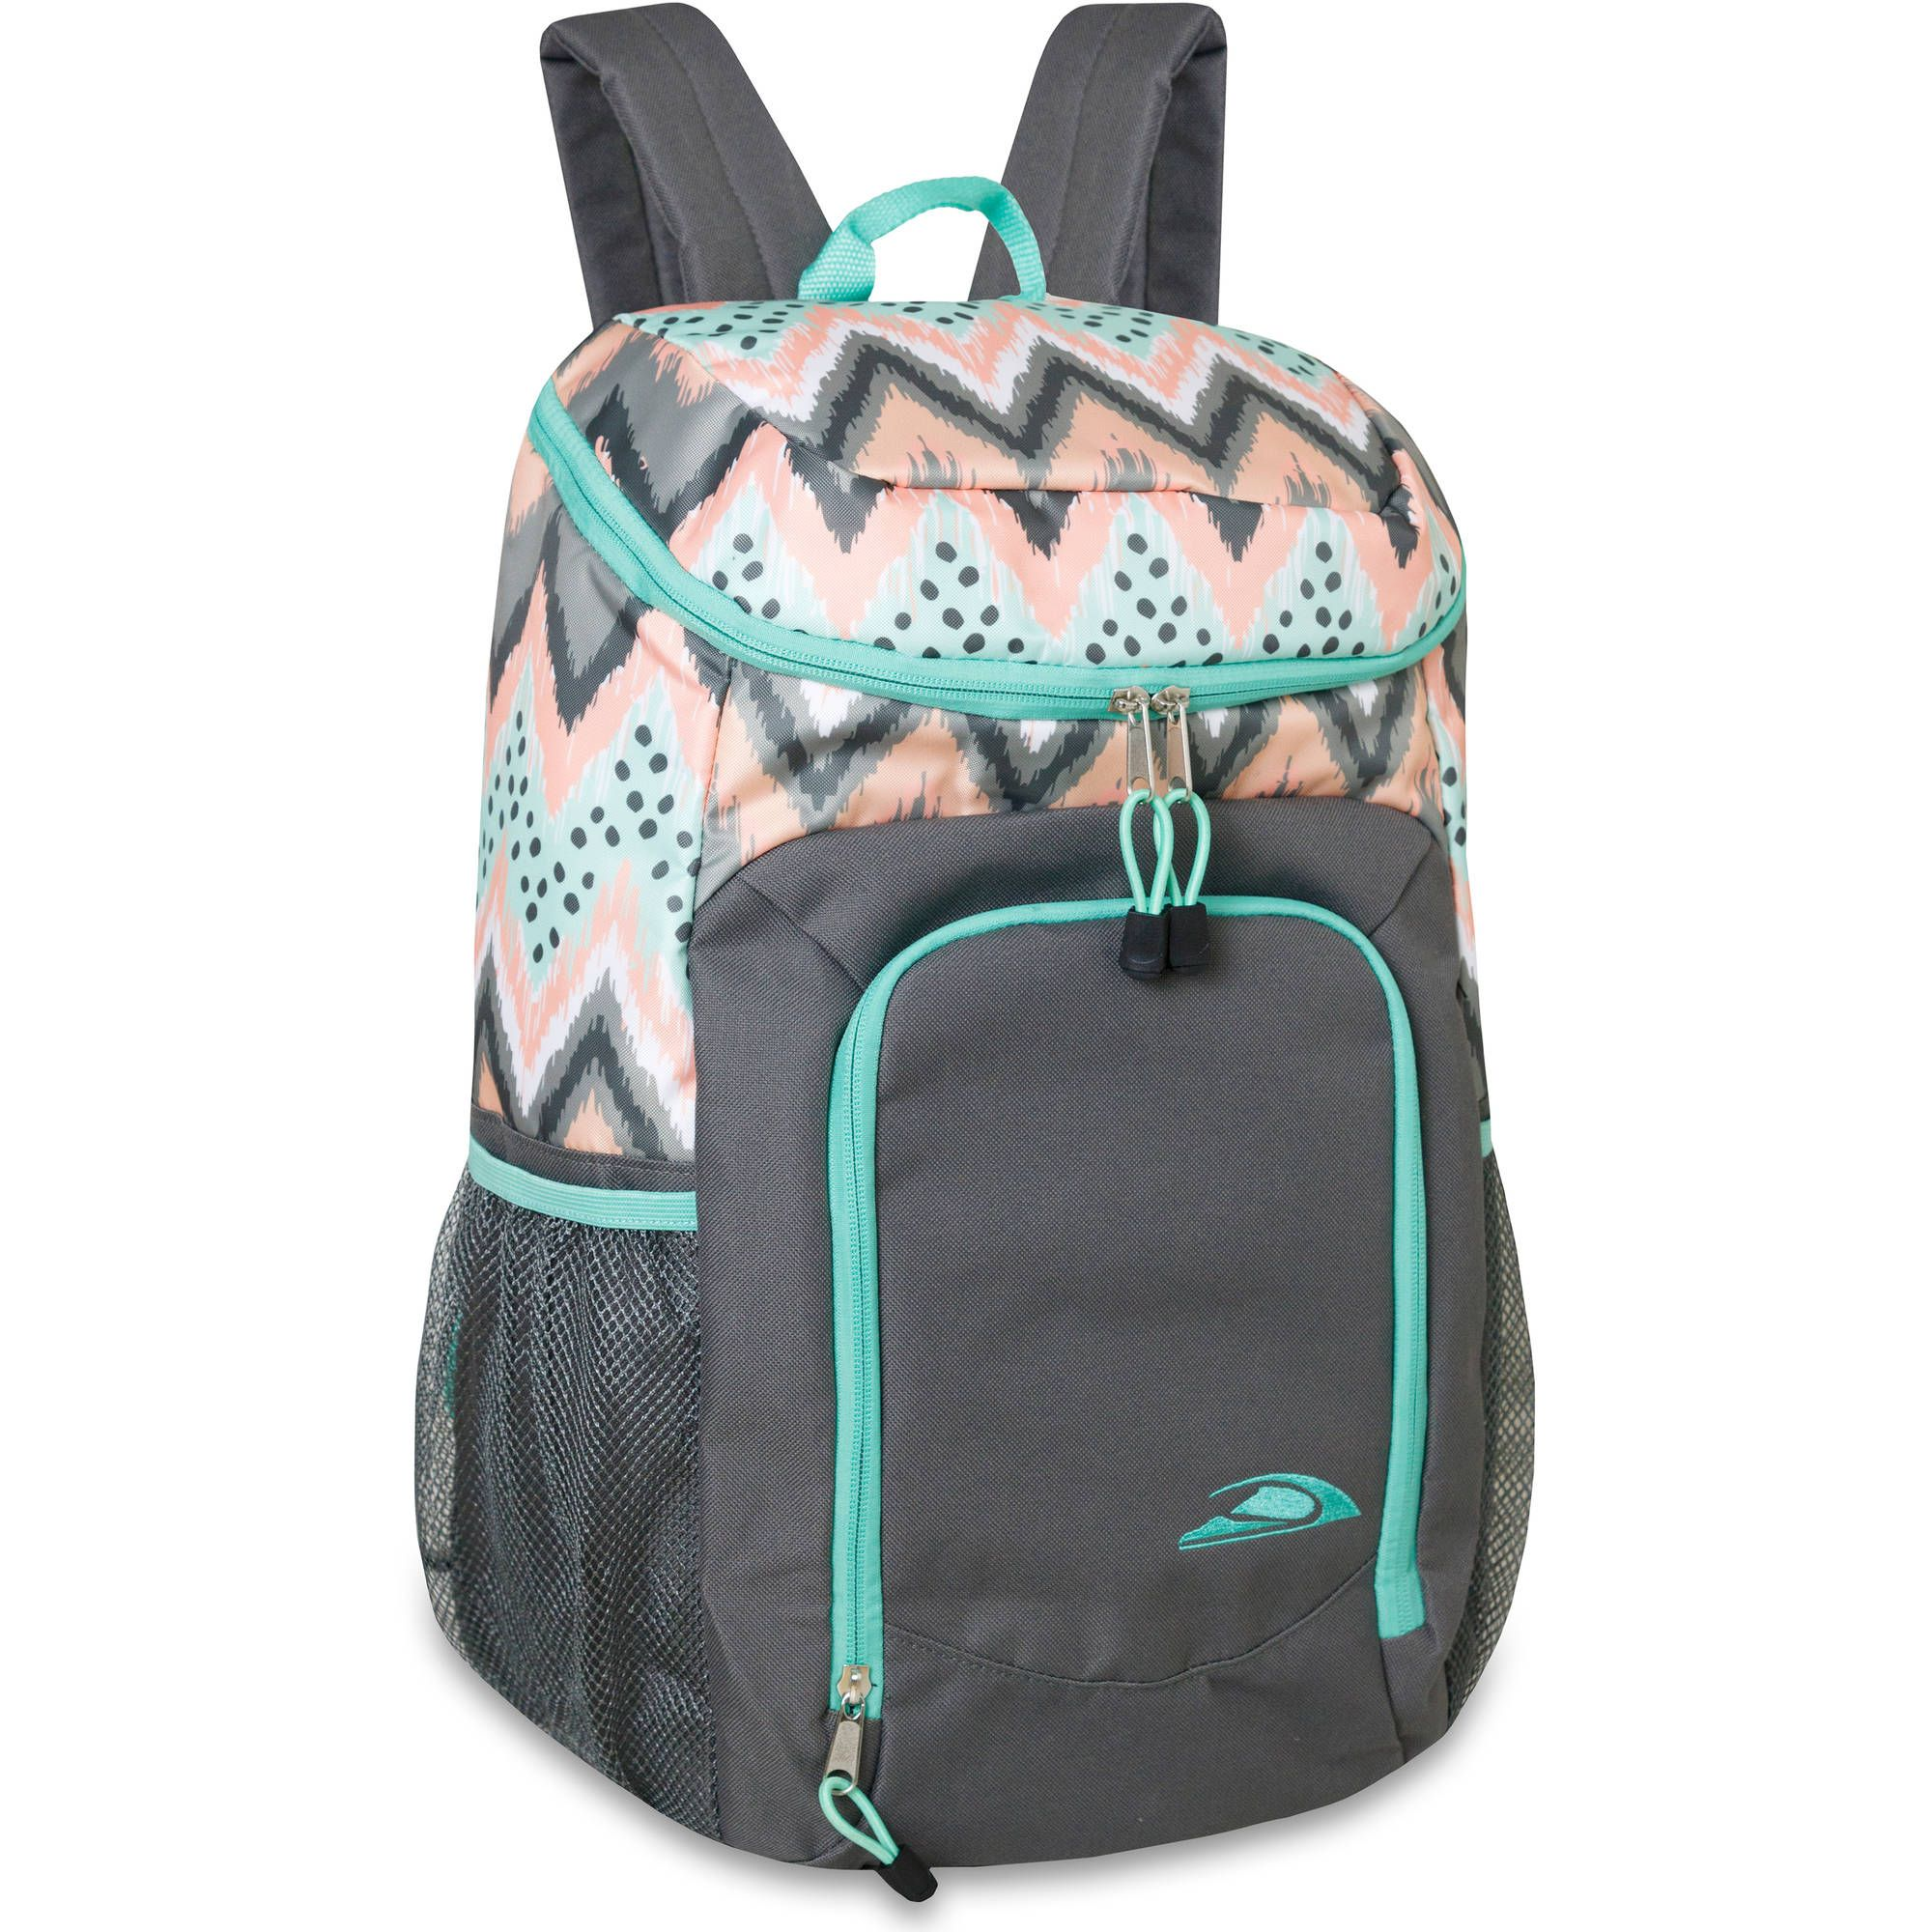 Girls Backpacks - Backpacks for Girls at Walmart.com | bookbags ...